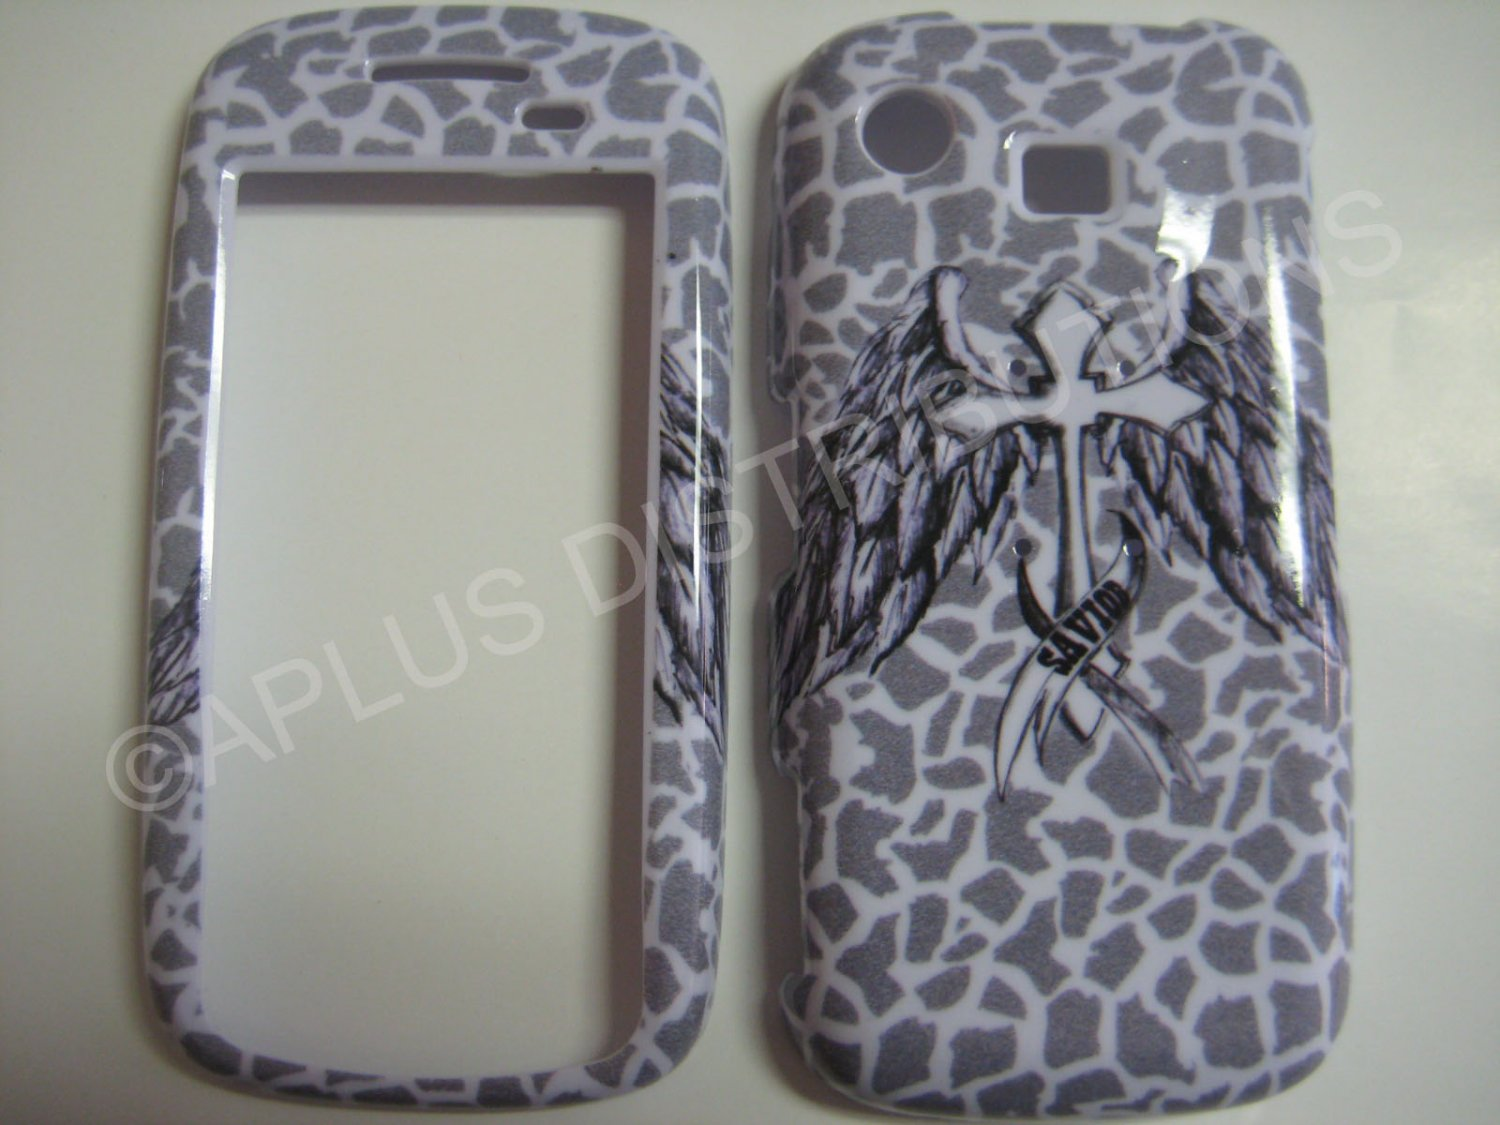 New Gray Savior Wings Hard Protective Cover For Samsung Impression A877 - (0019)